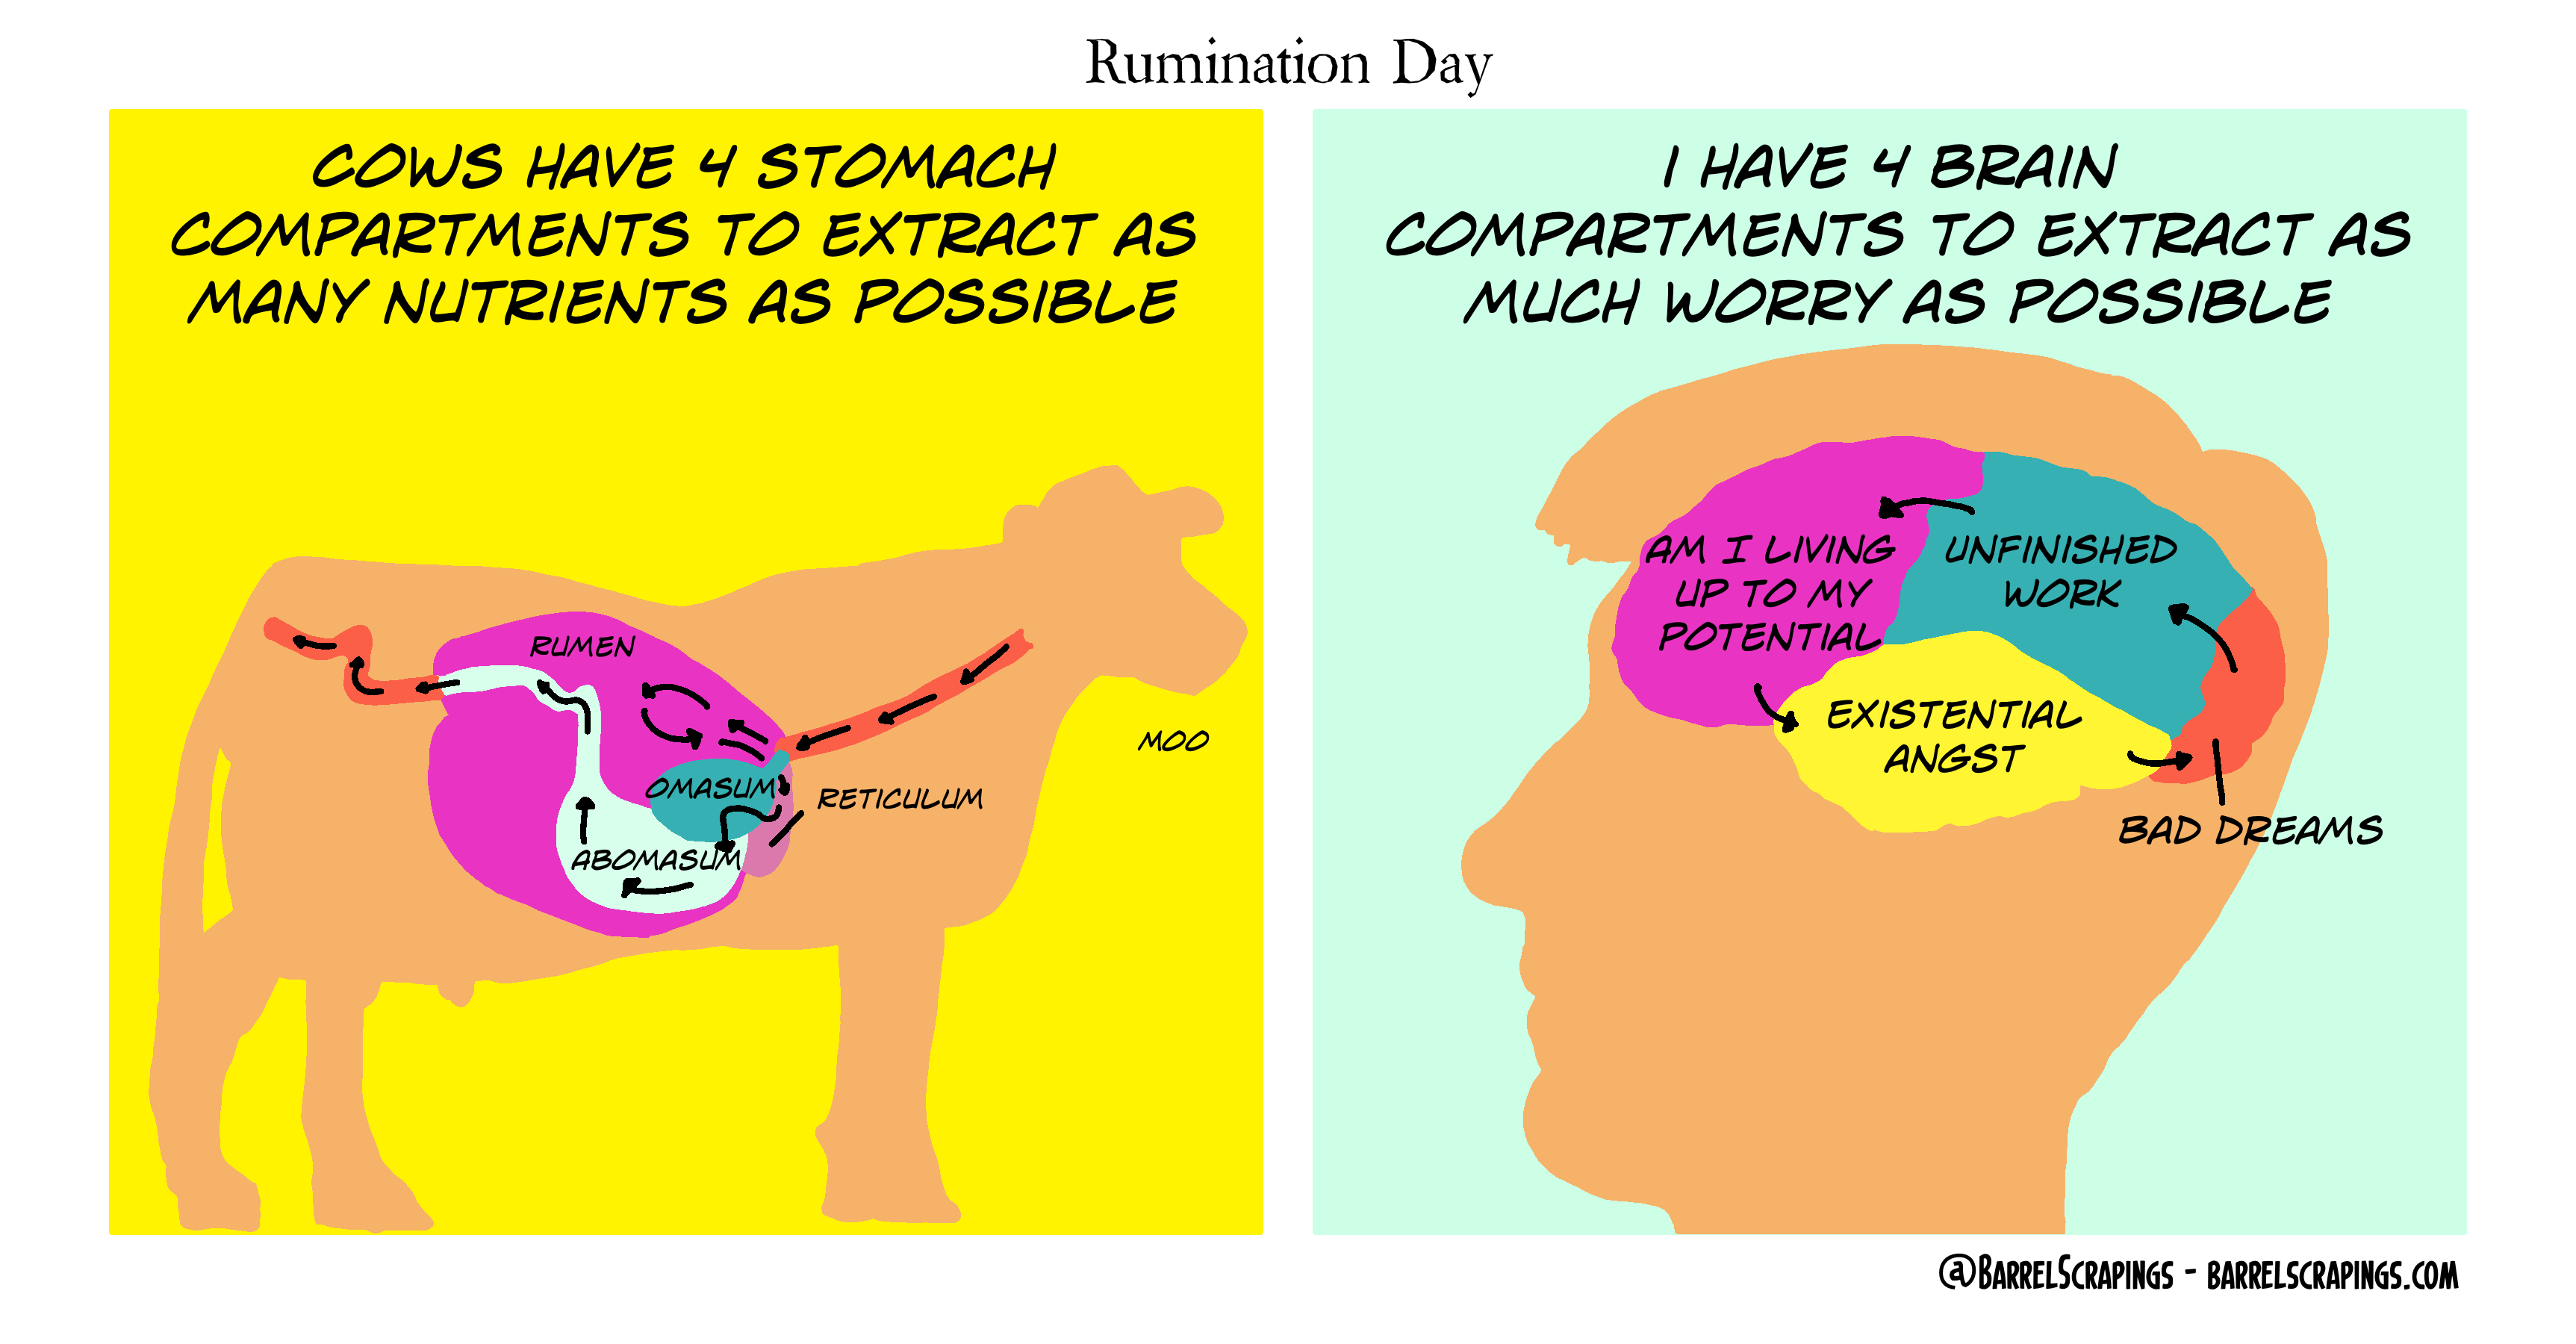 image from Rumination Day